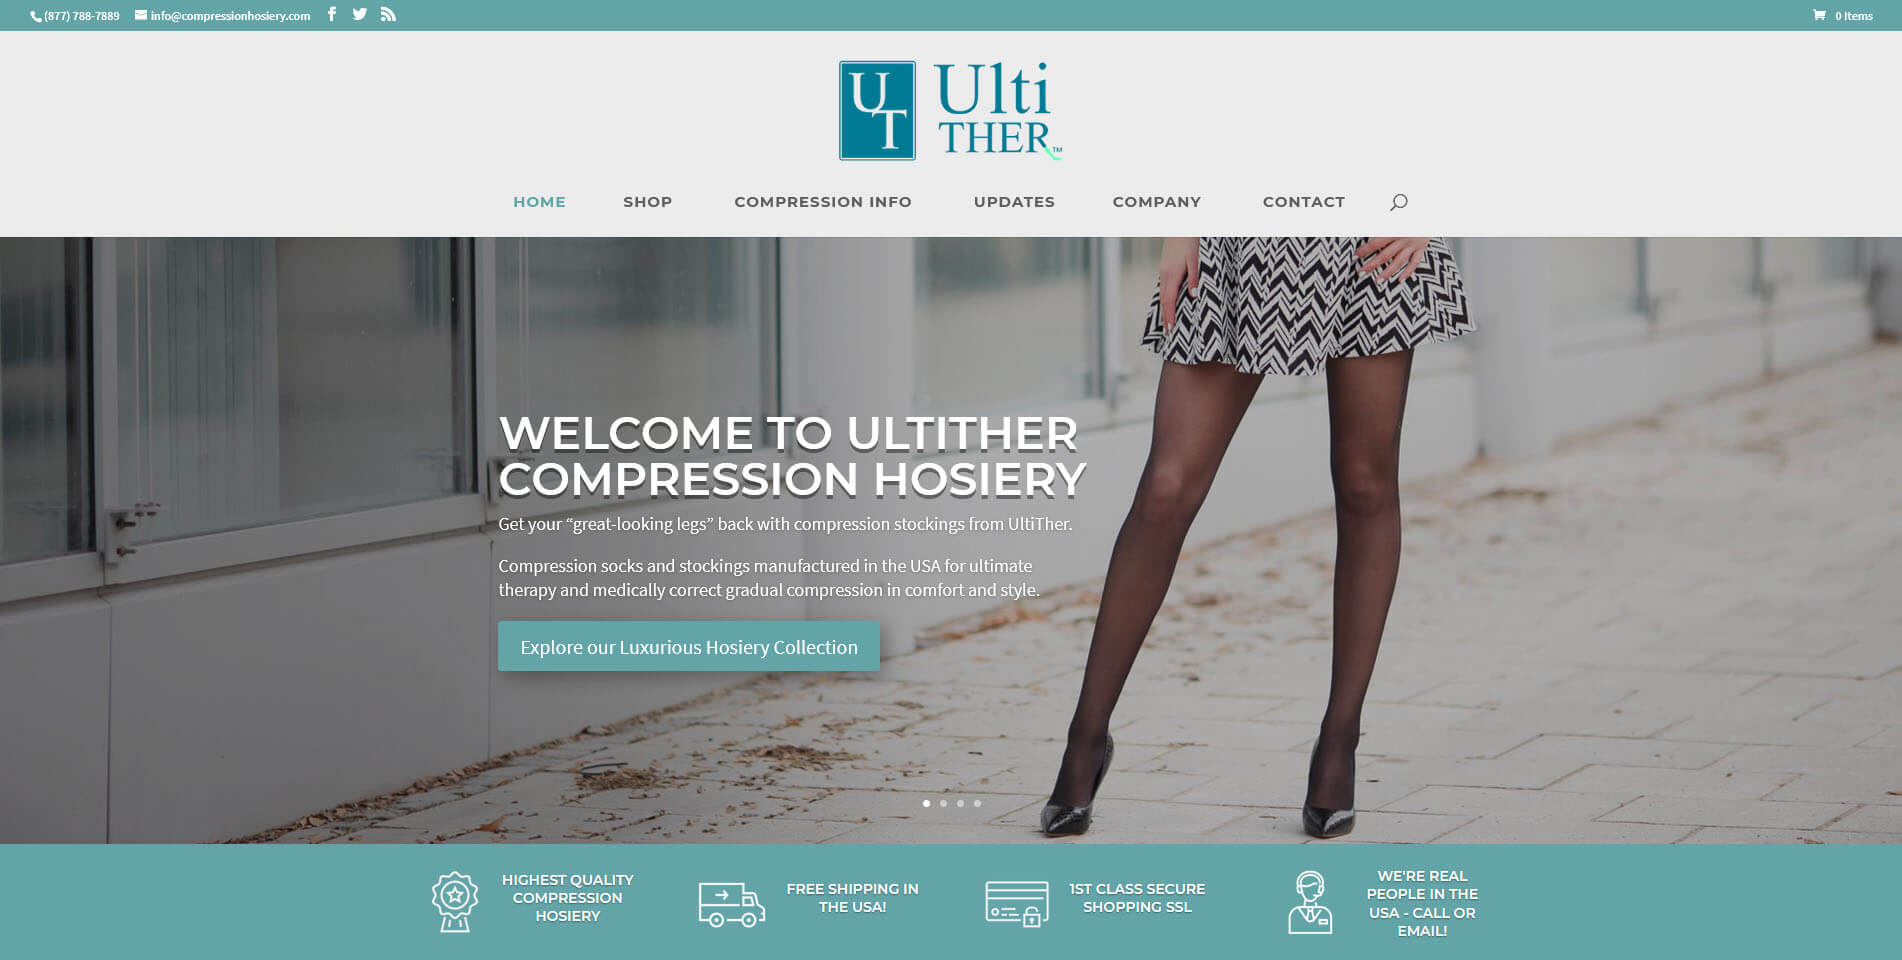 An image of the Compression Hosiery website developed by Not Fade Away